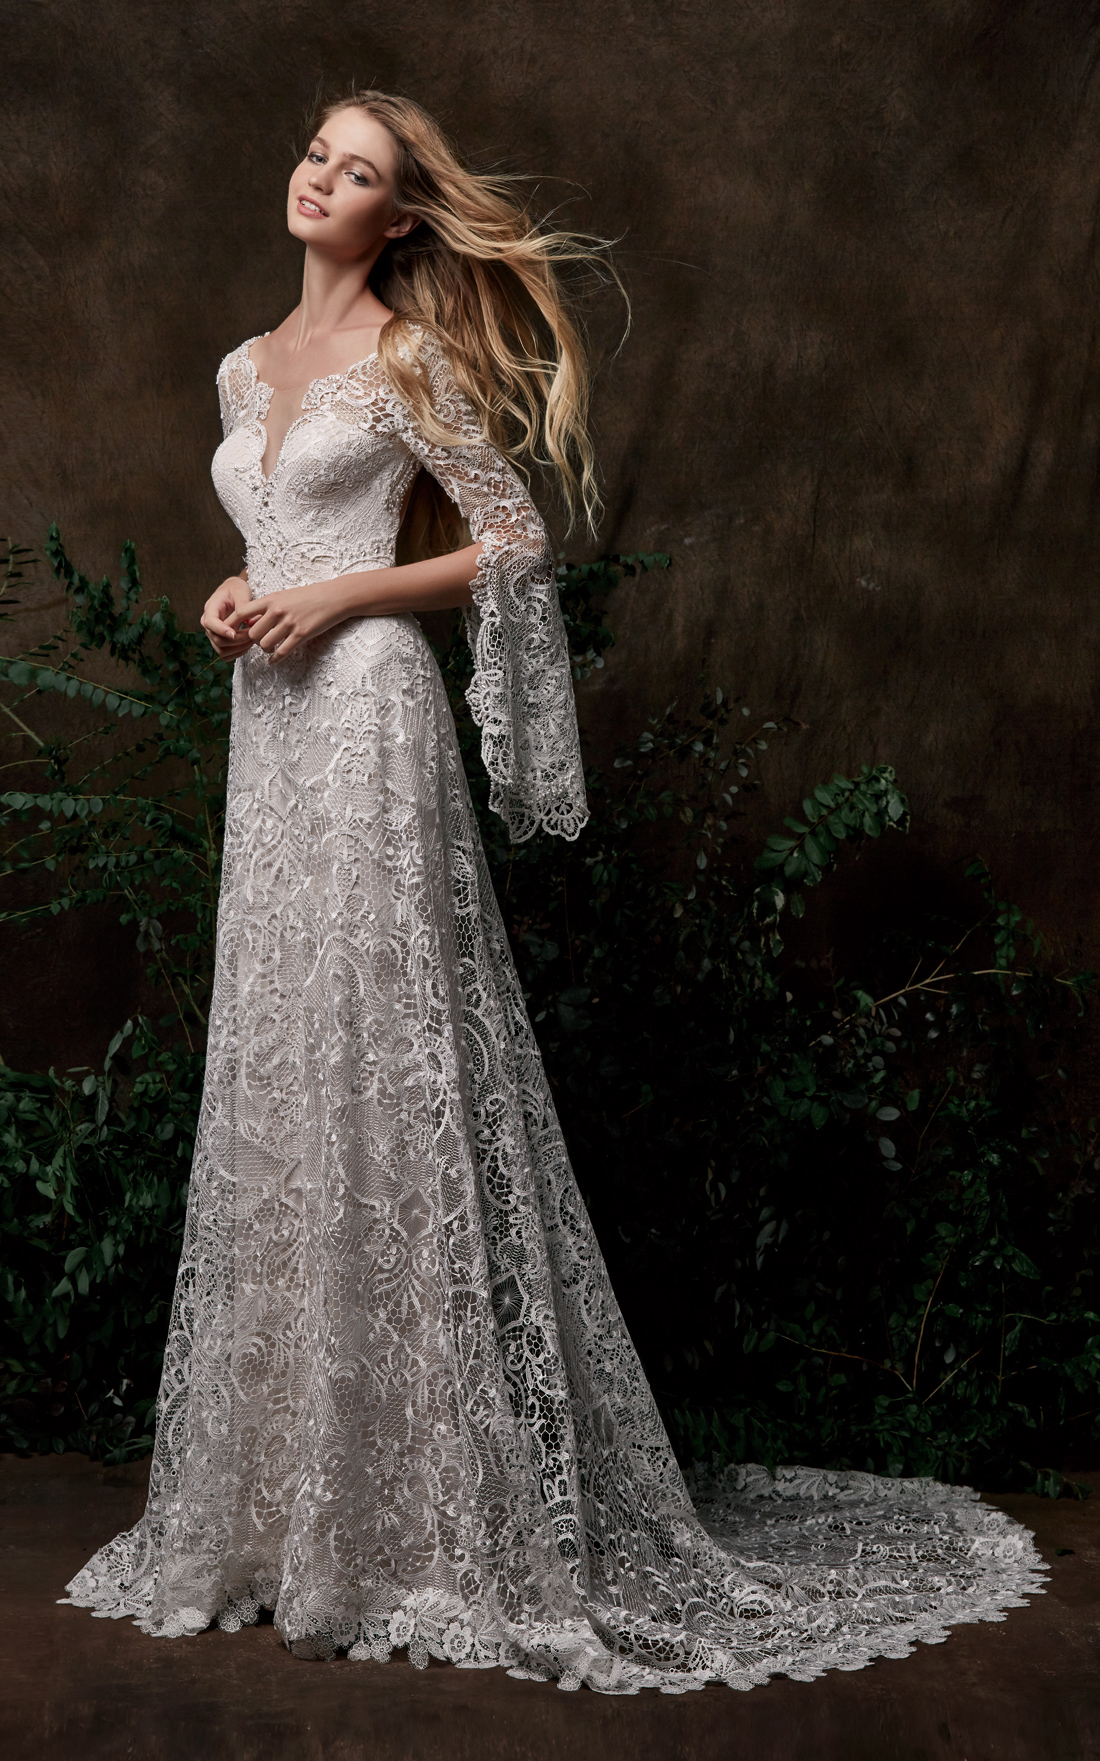 chic-nostalgia-wedding-dress-Fairy-Queen-gown-Bohemian--bell-sleeves